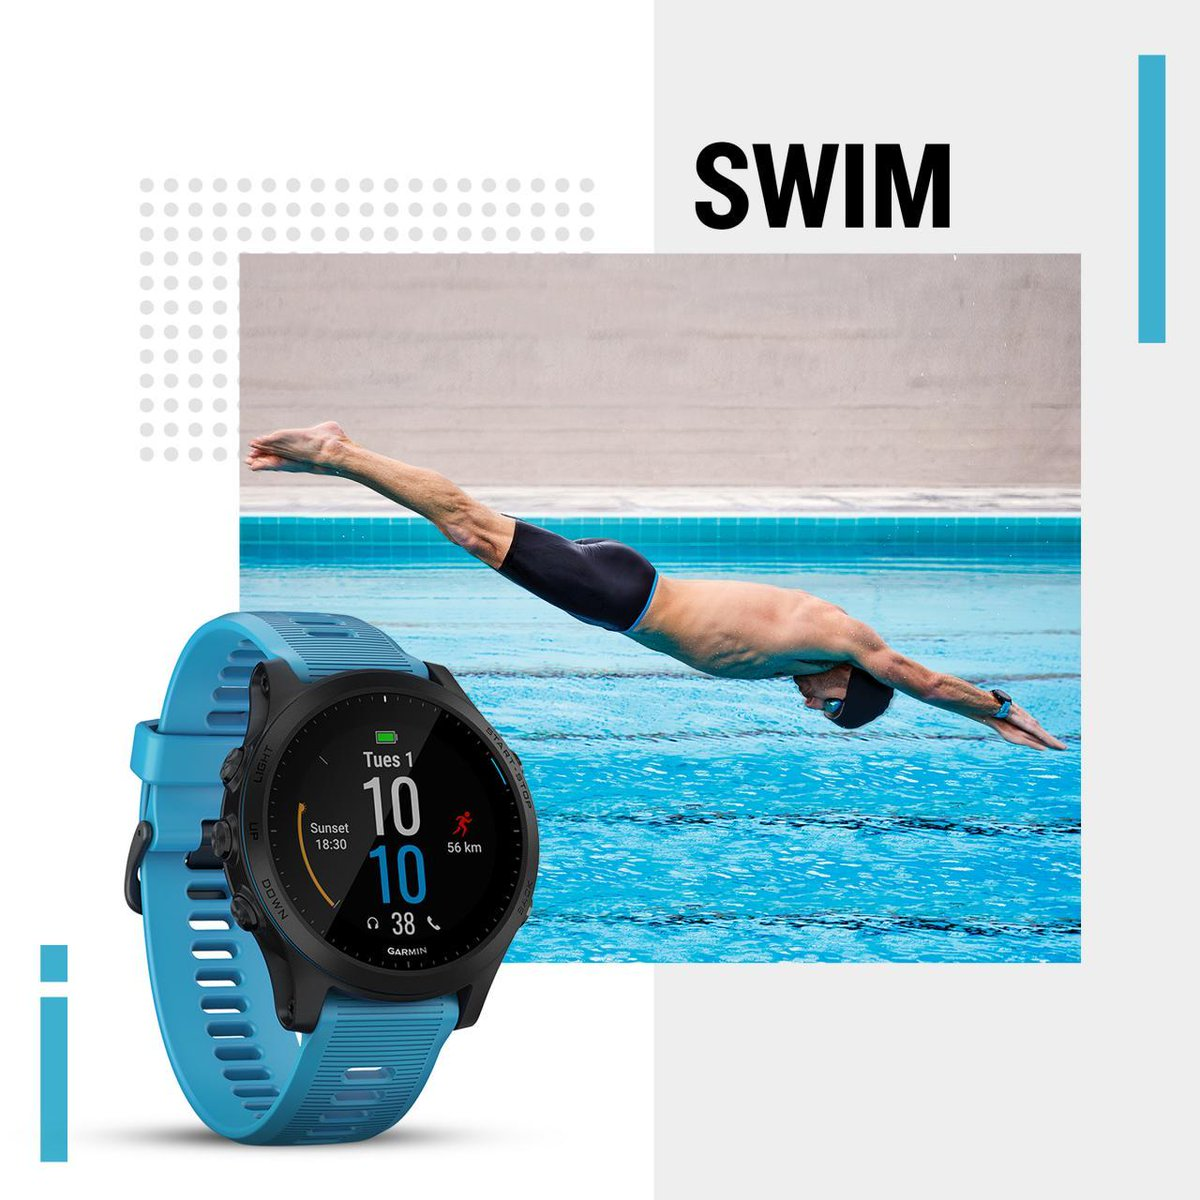 Get personalized data with Forerunner 945 to train your form. Train smarter, not harder whether you are at home in the pool or open water.  Featured Product Forerunner 945: https://t.co/FSJz5zCp0k  #LightToYourTraining #Workout #weekendvibes #fitness https://t.co/xINQNPp1gs